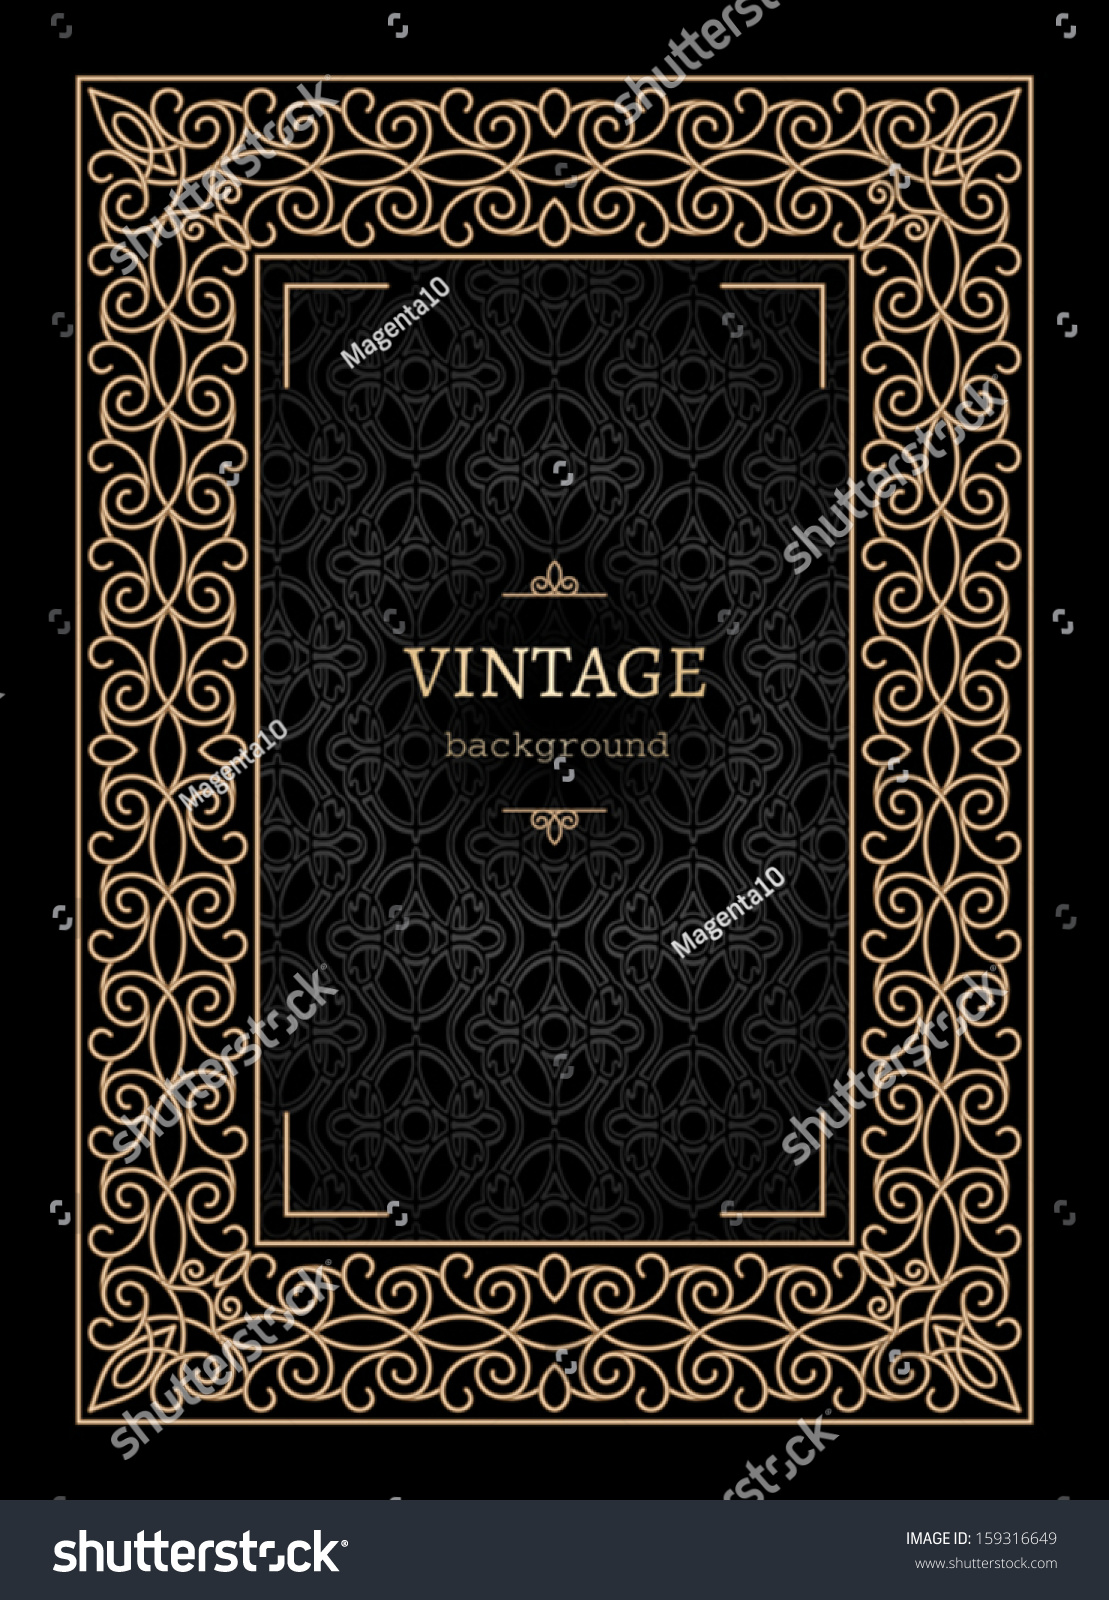 Vintage Book Cover Background : Vintage gold background book cover vector stock